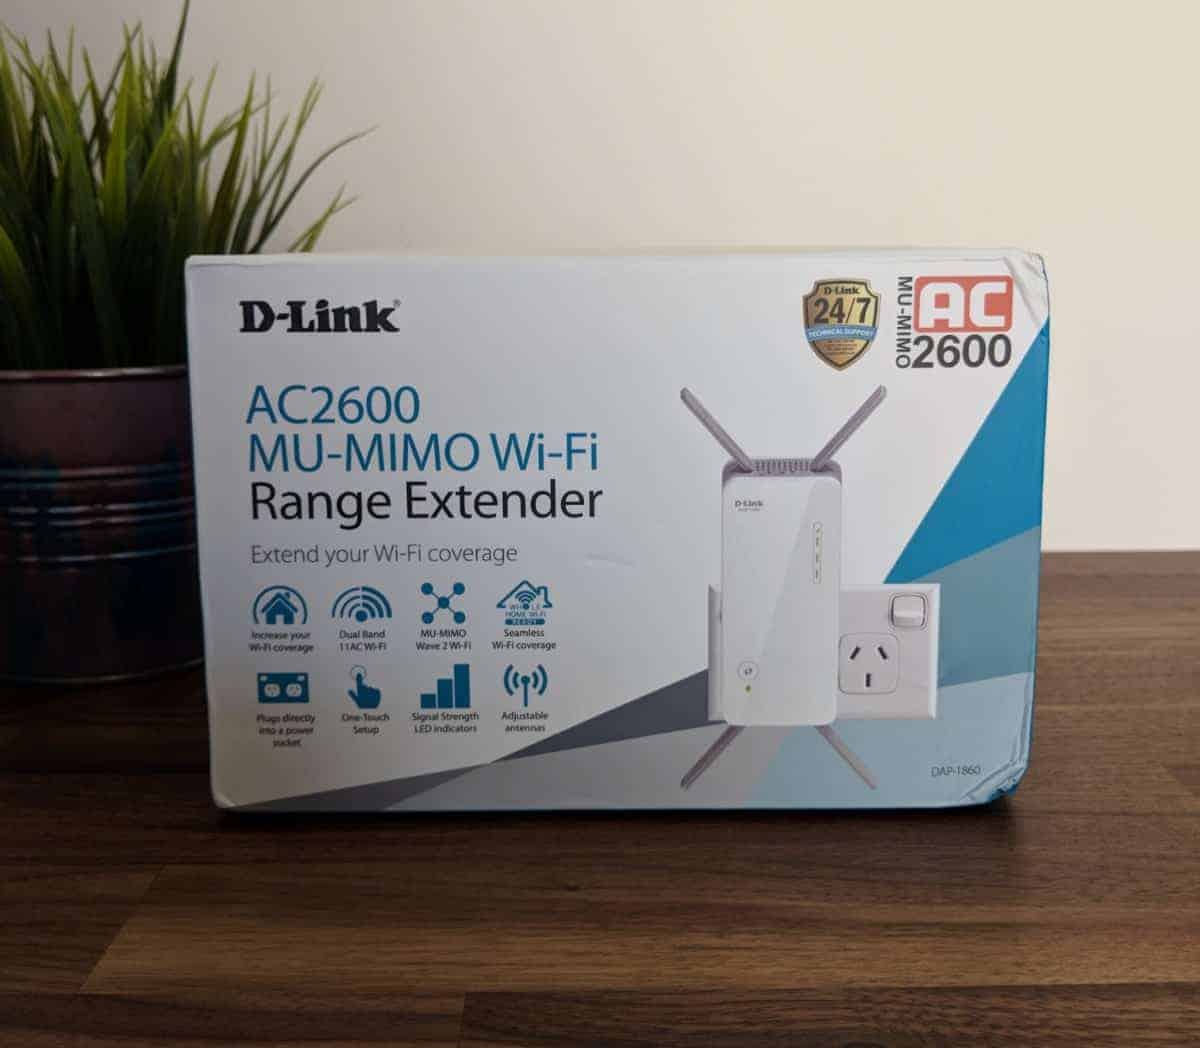 D-Link-DAP-1860-Photos-13 D-Link DAP-1860 AC2600 MU-MIMO Review